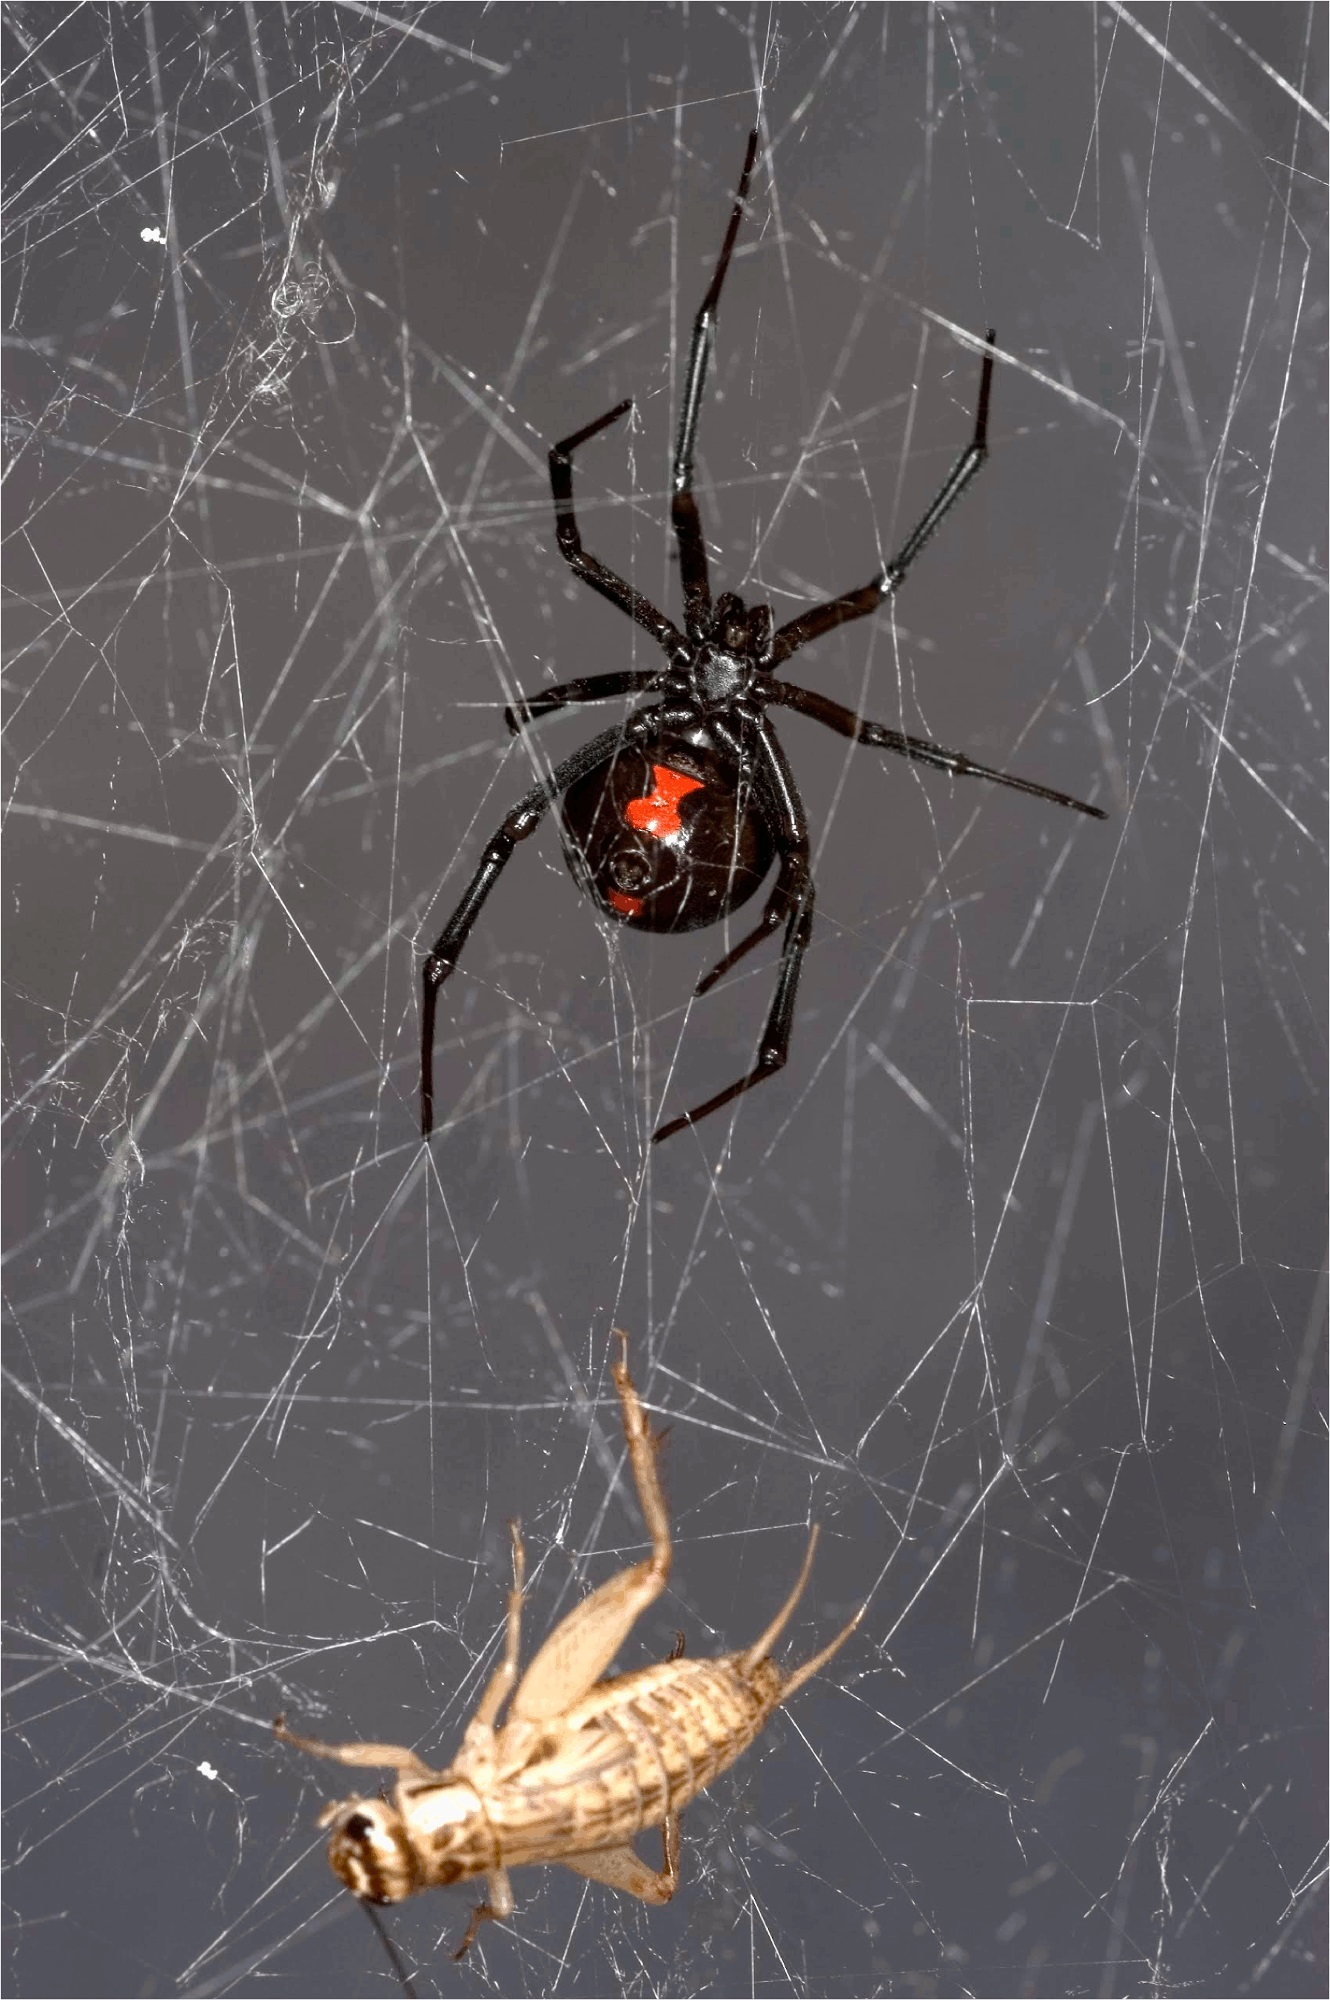 Online Architect Insect Dna Extracted Sequenced From Black Widow Spider Web